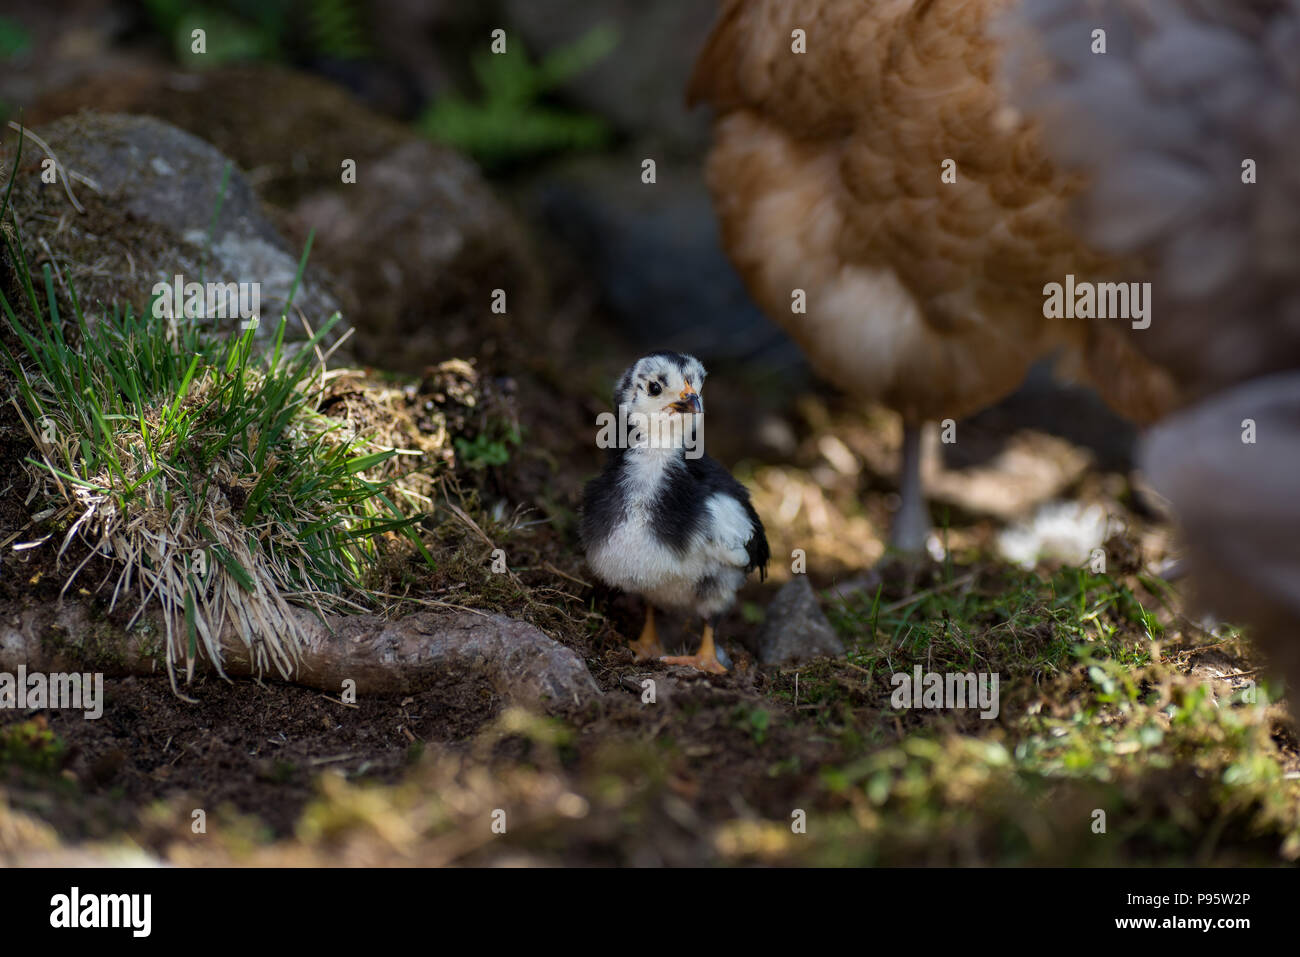 chicken near a hen on its first walk outside in a swedish garden - Stock Image